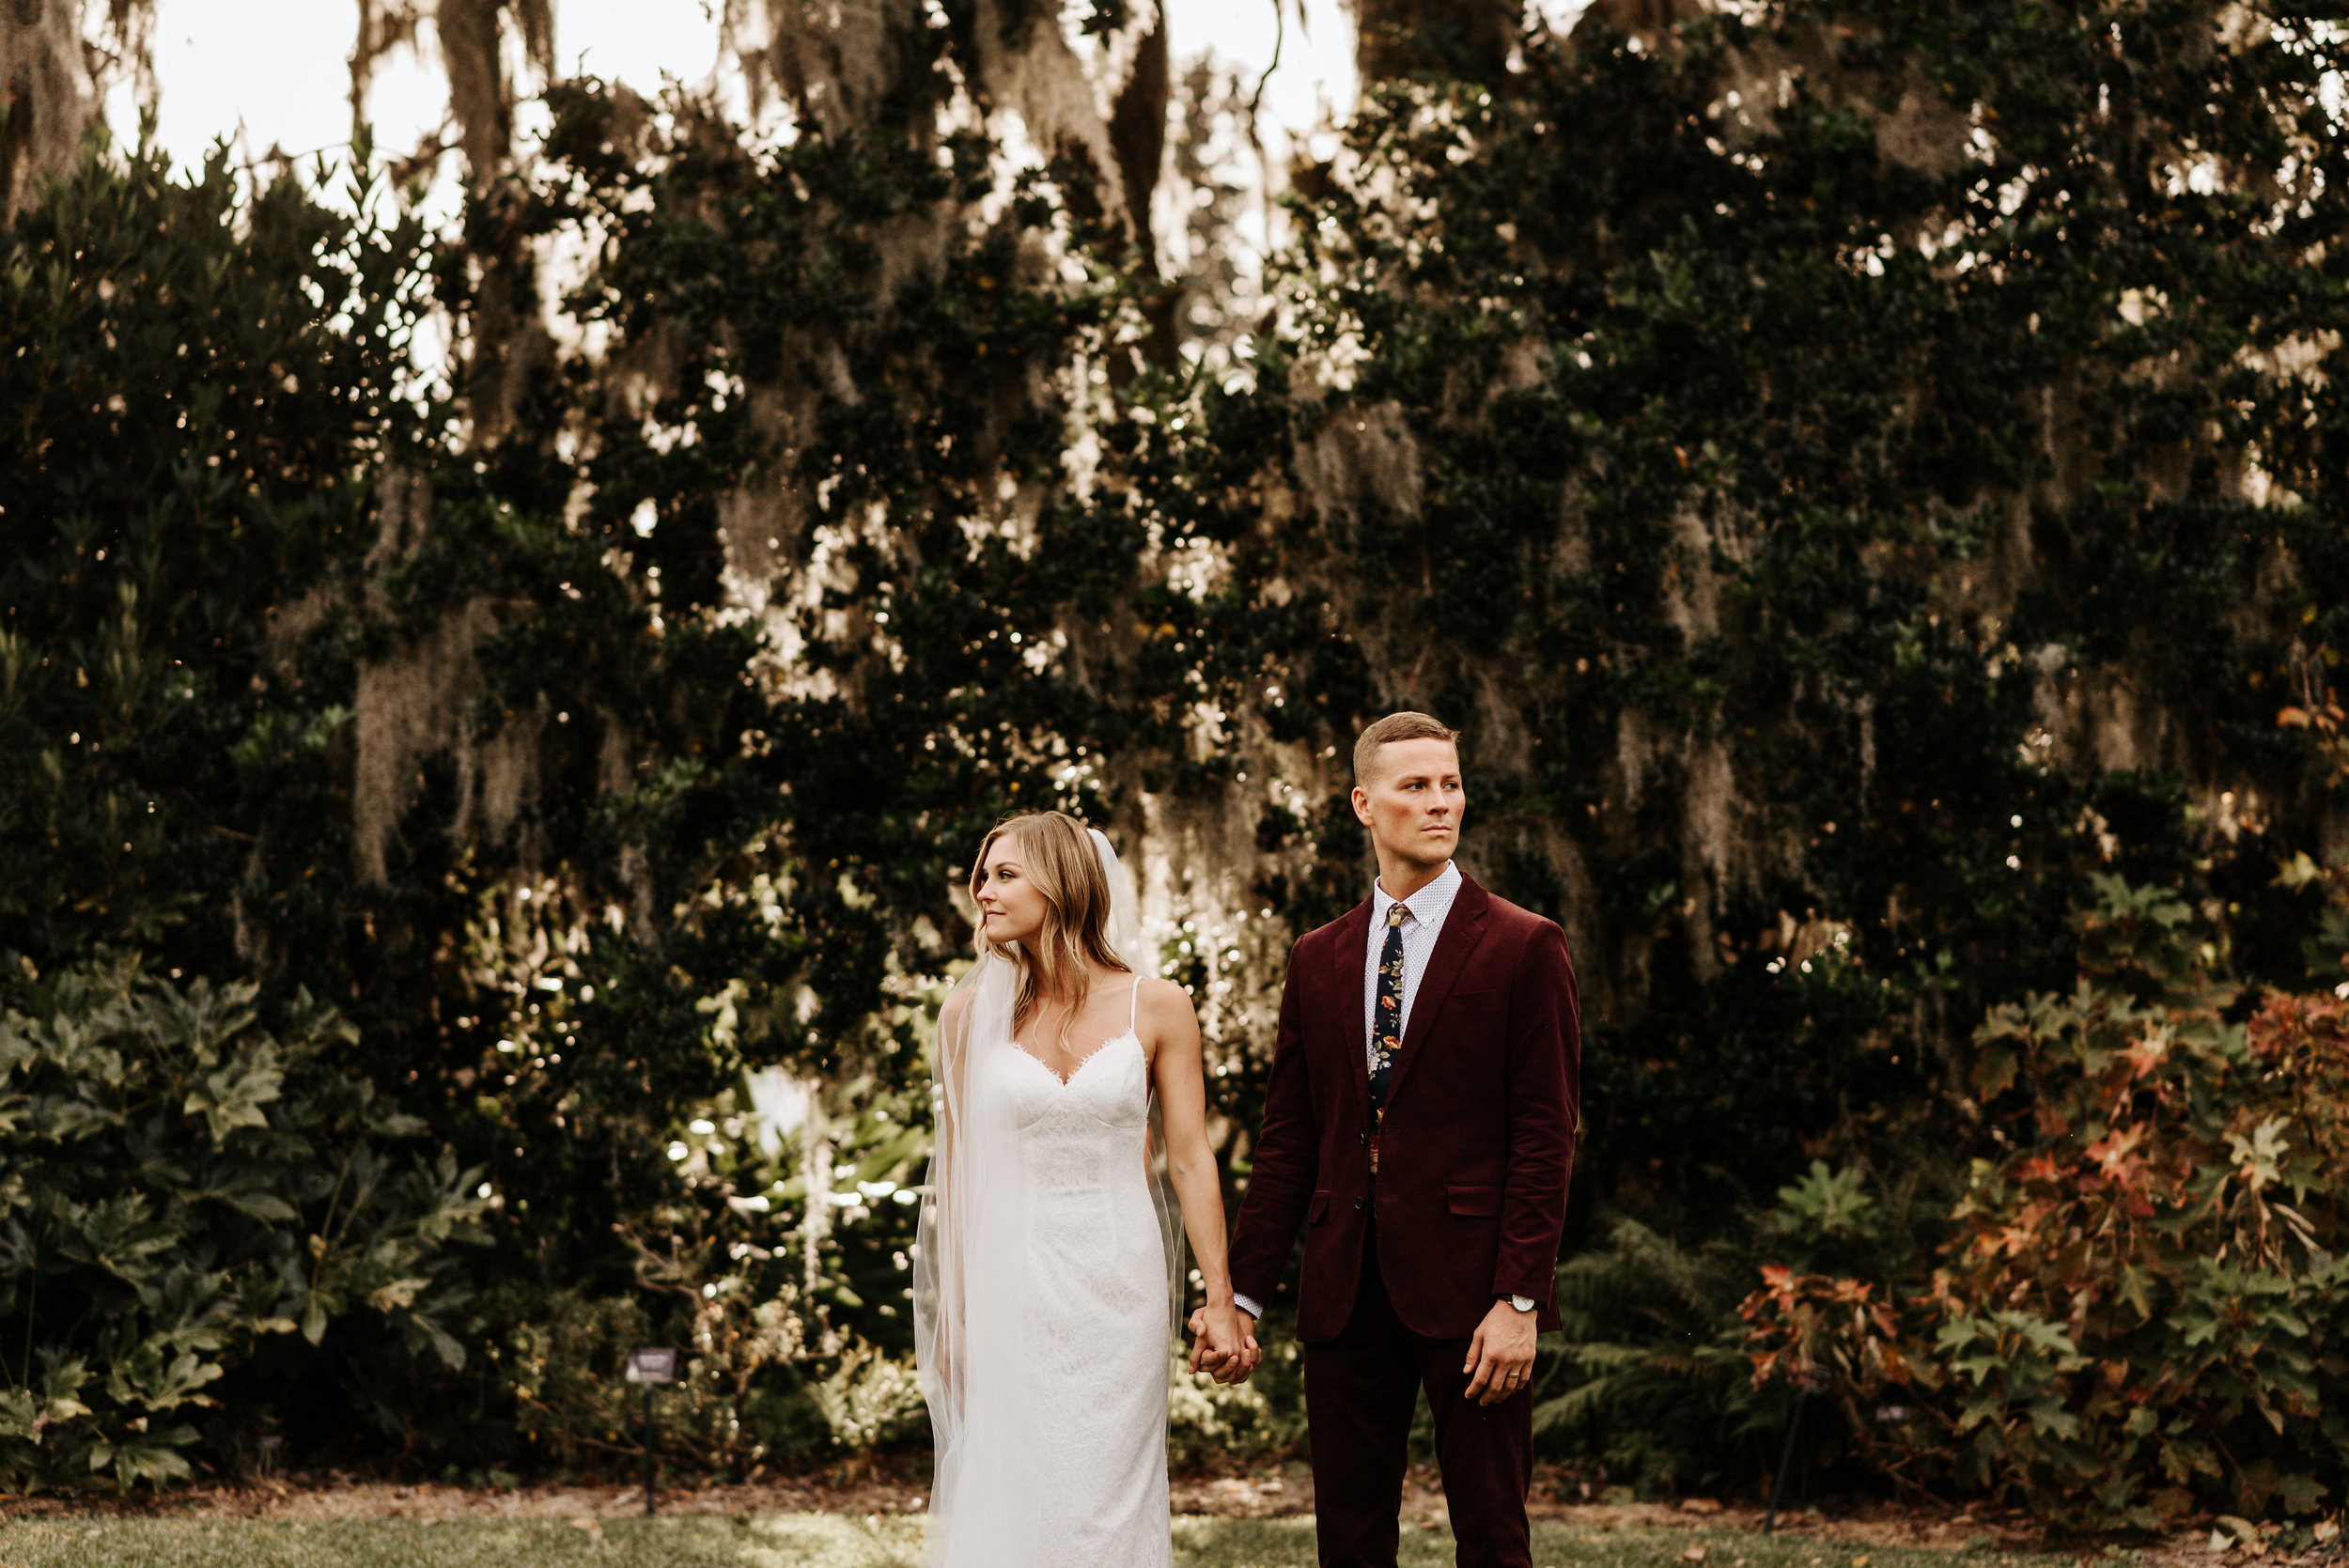 Kourtney_Sean_Savannah_Georgia_Wedding_Wormsloe_Histroic_Site_Coastal_Georgia_Botanical_Gardens_Photography_by_V_7120.jpg